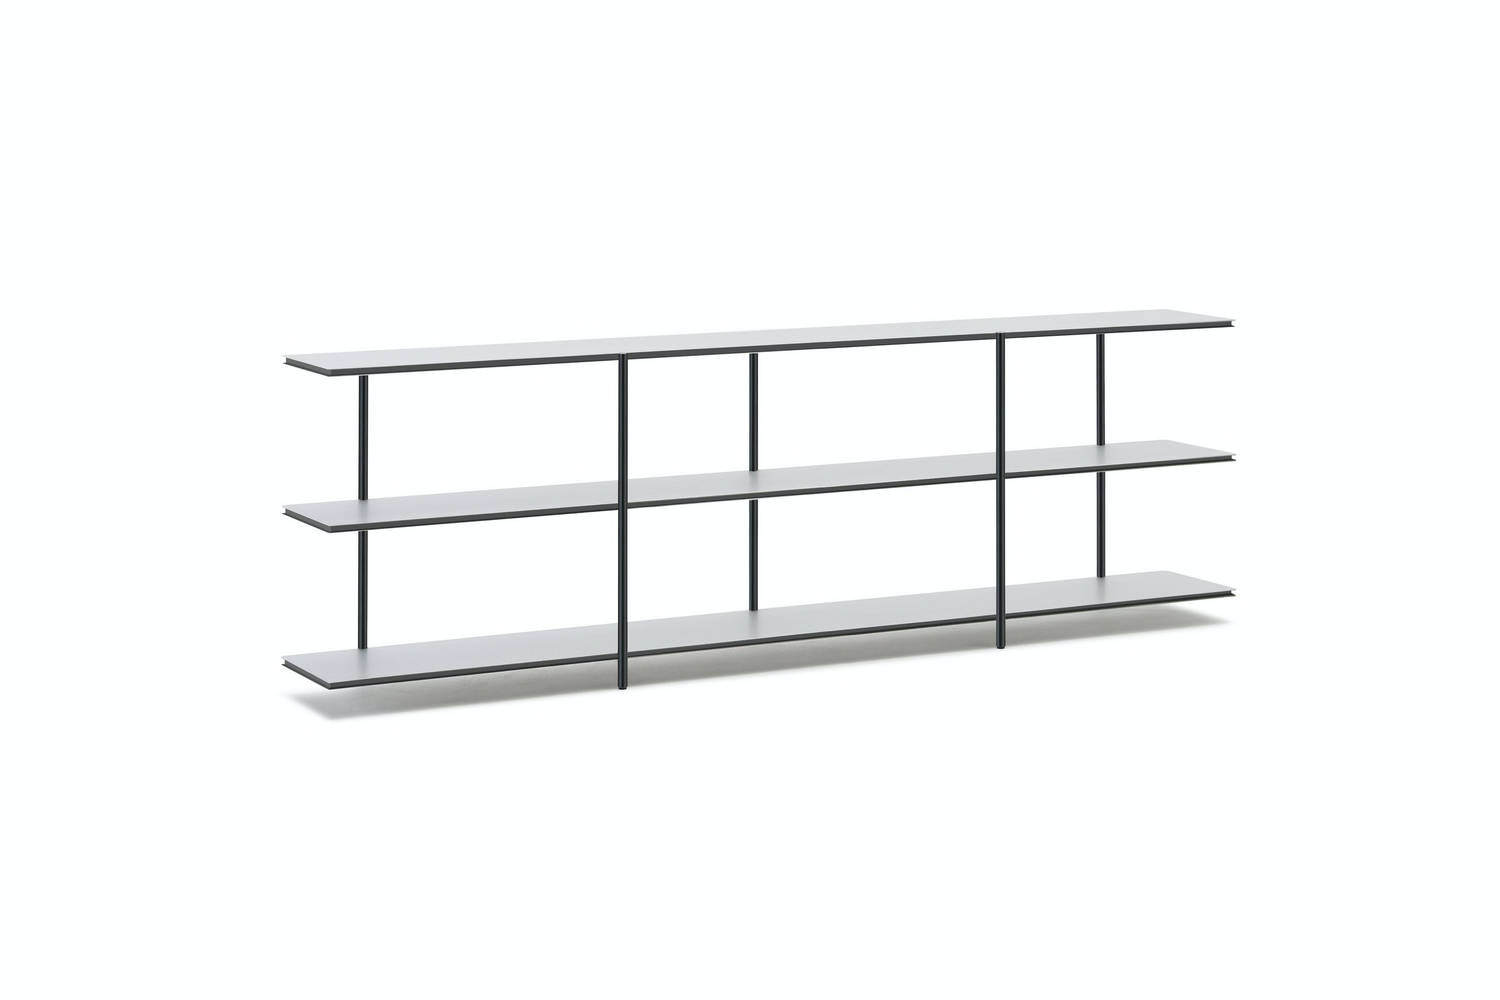 Aero Bookcase by Shibulero for Living Divani